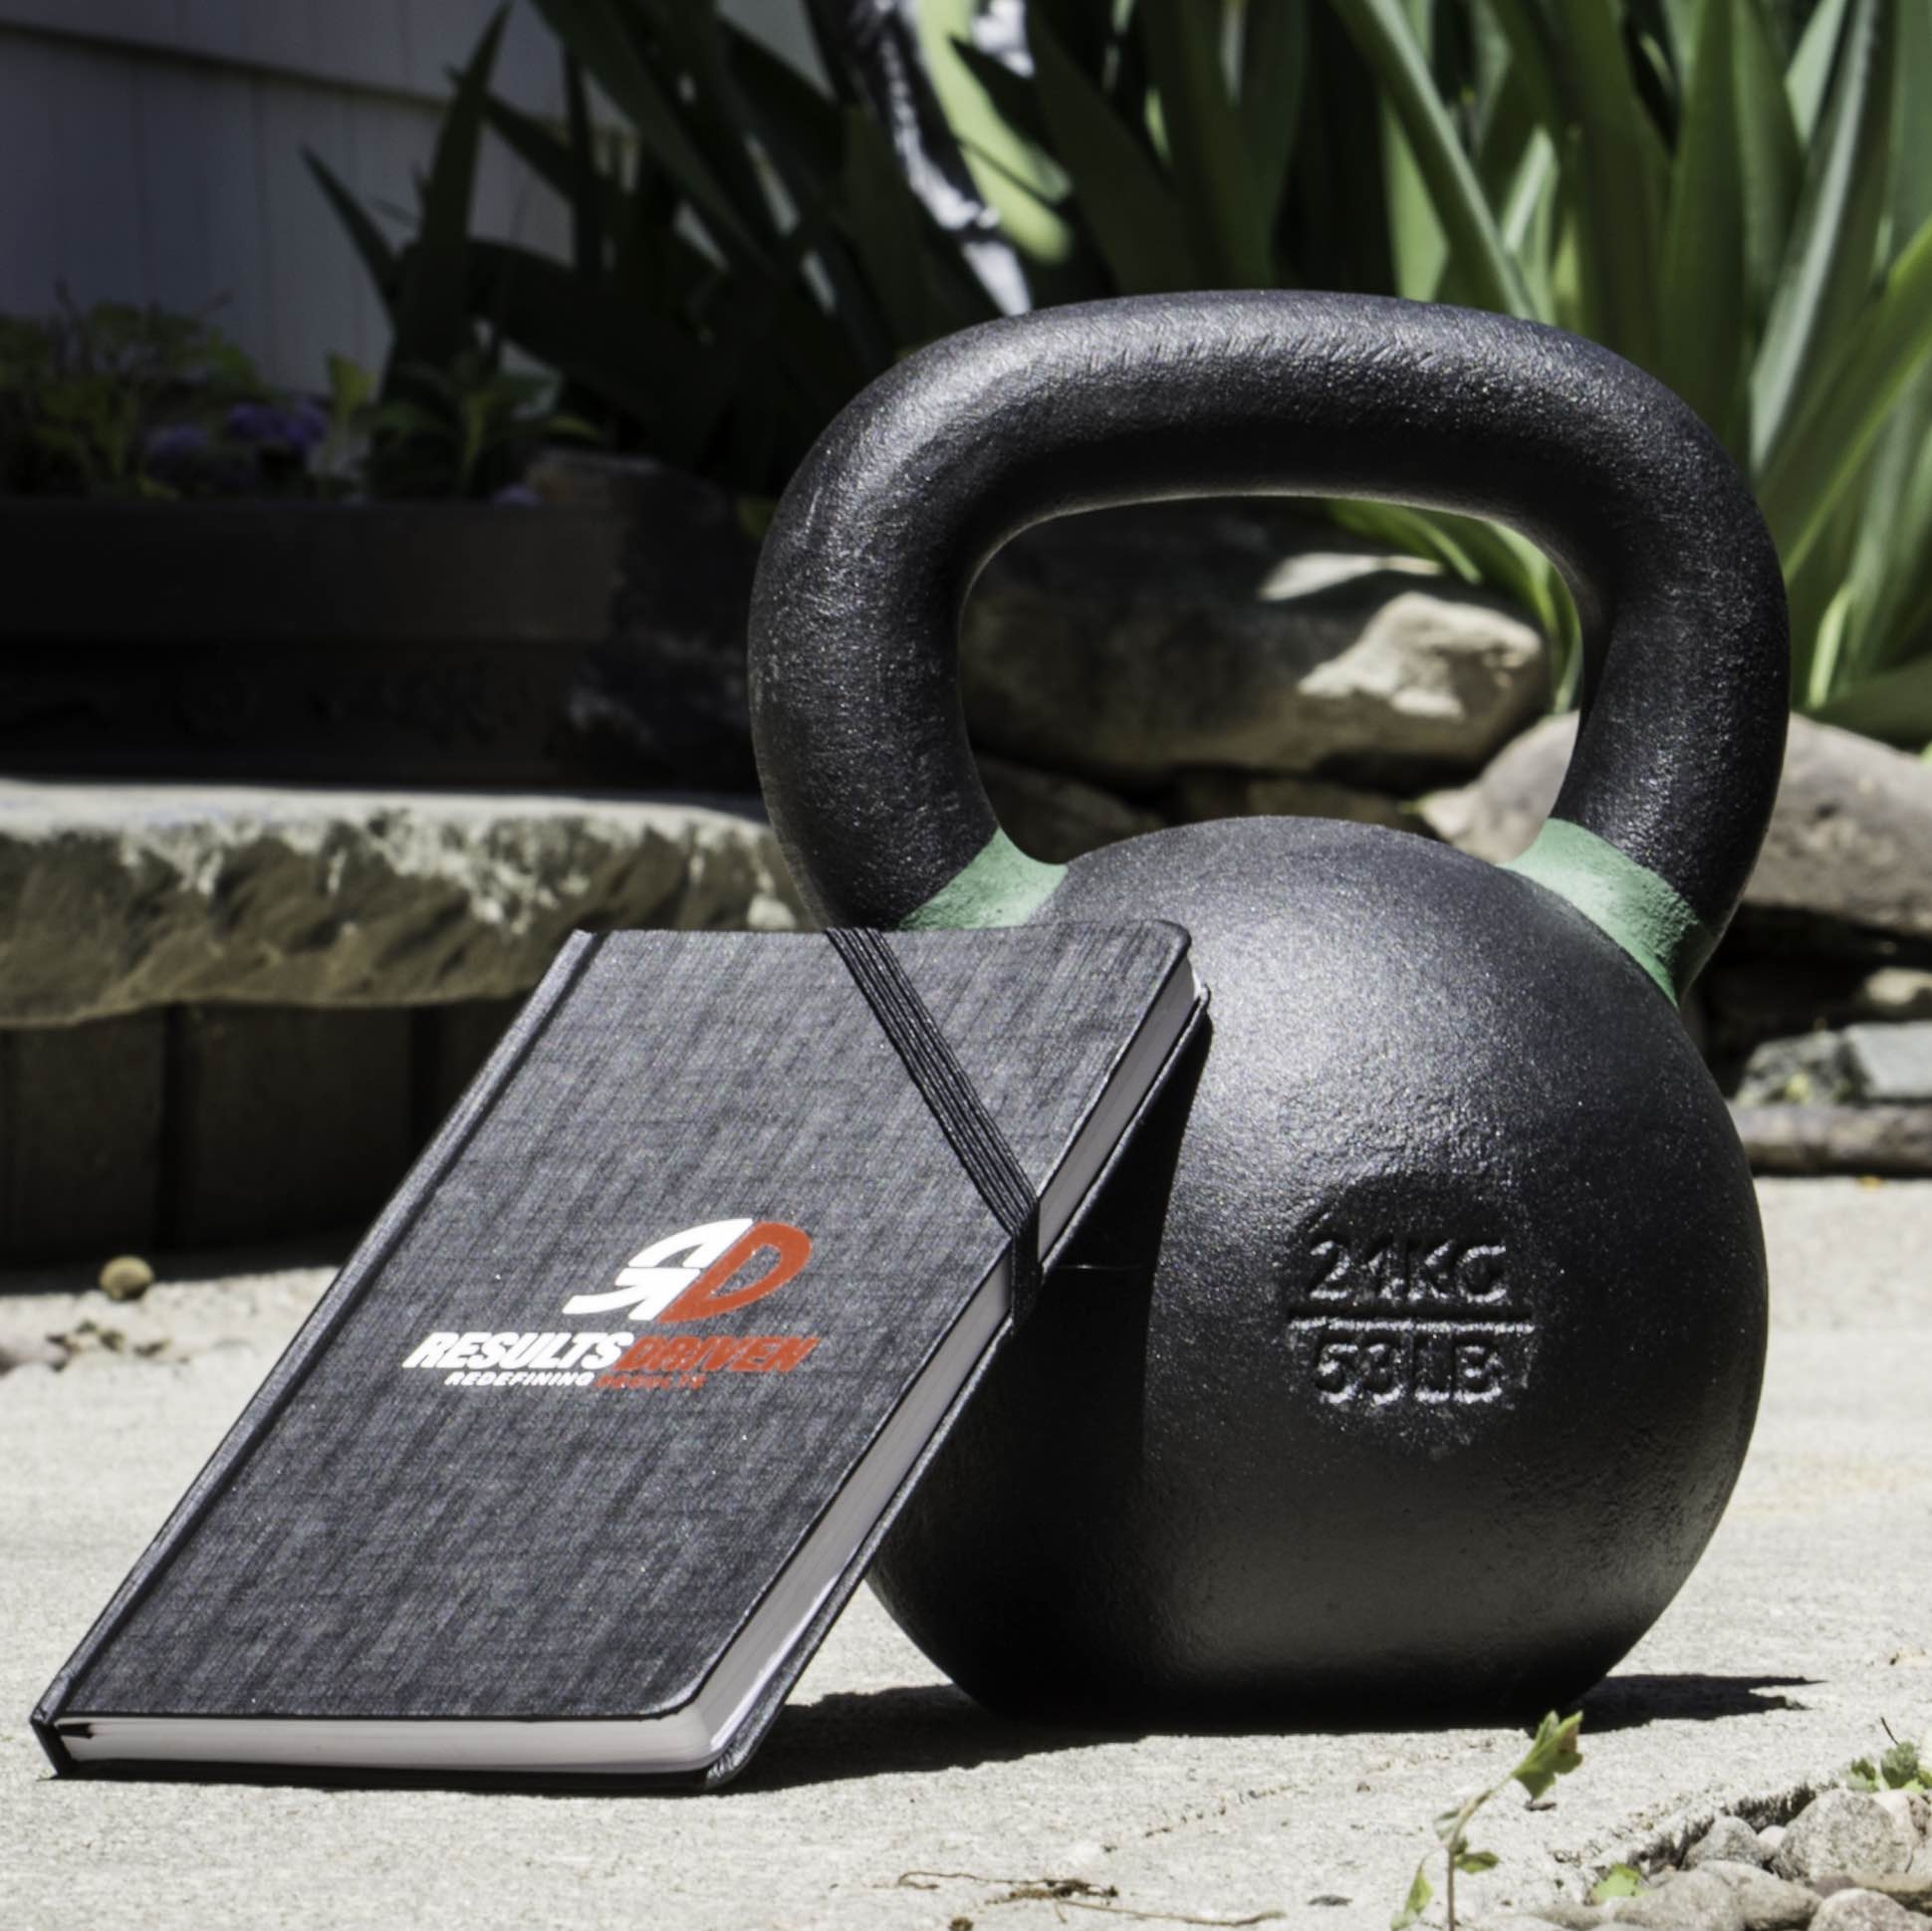 food journal kettlebell 3x2_Fotor.jpg